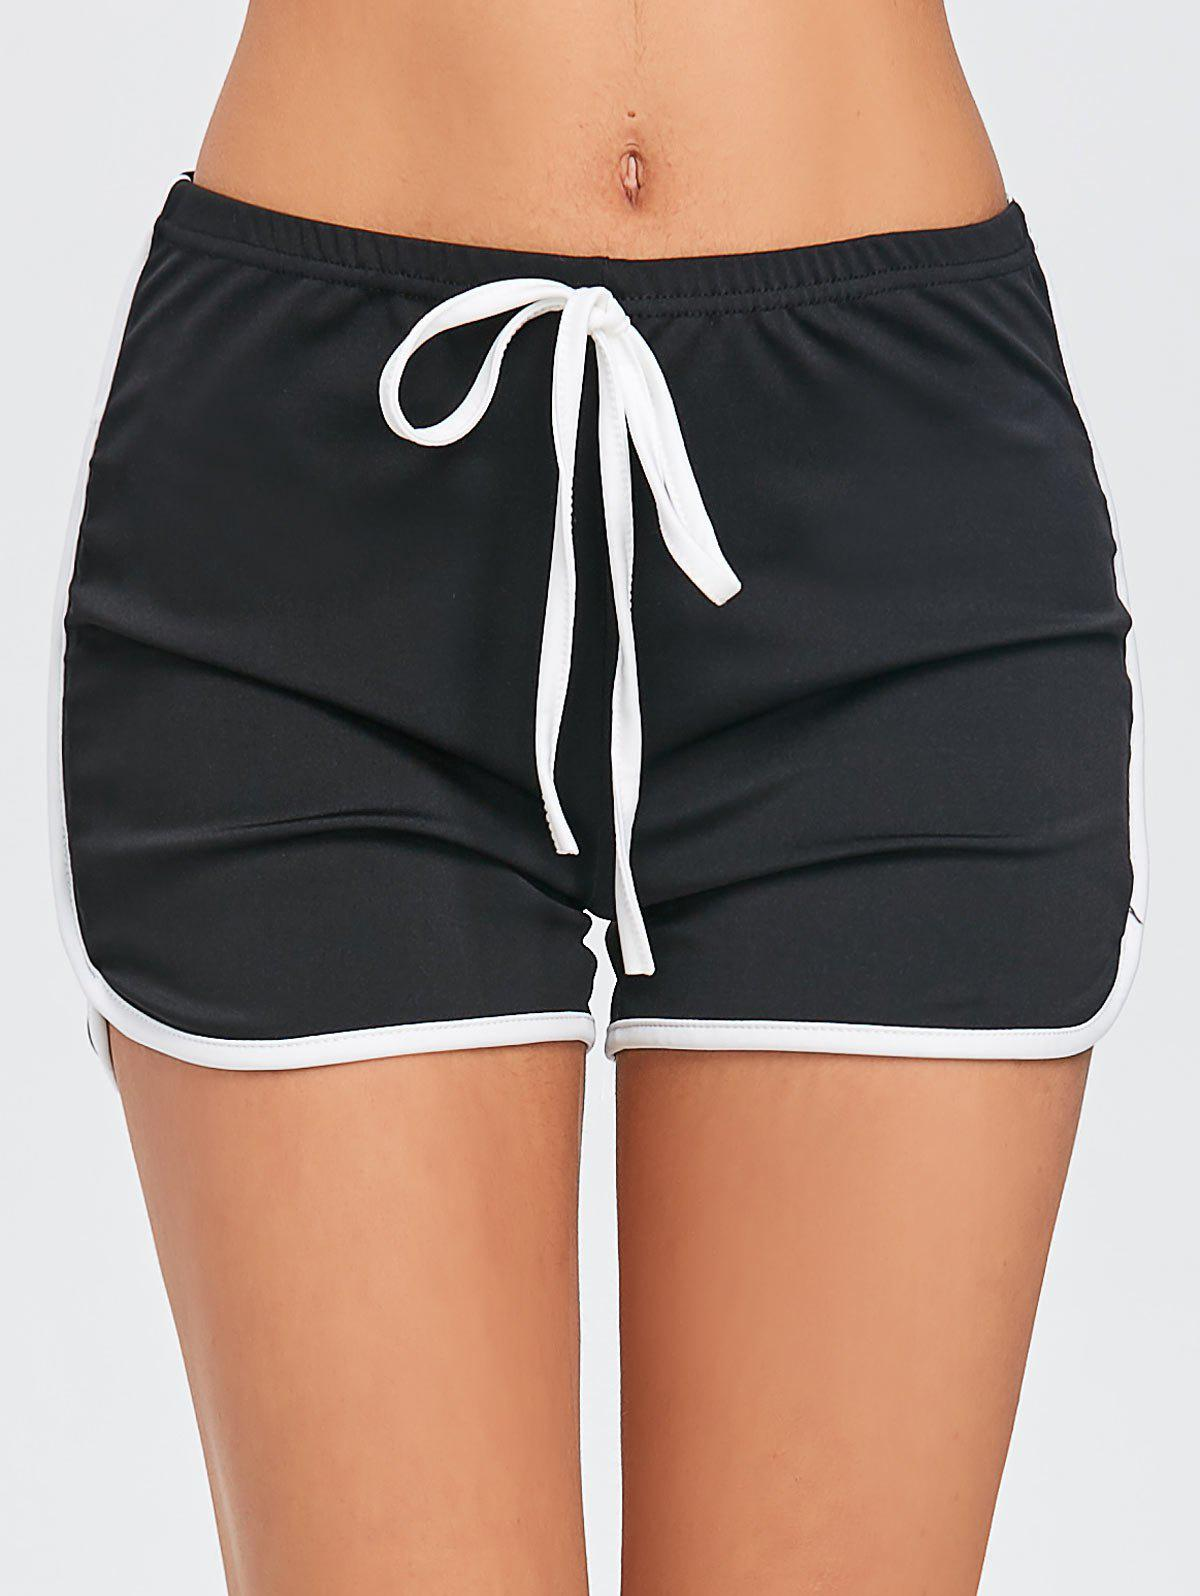 5d65f11d4f 25% OFF] Drawstring Two Tone Workout Dolphin Shorts | Rosegal